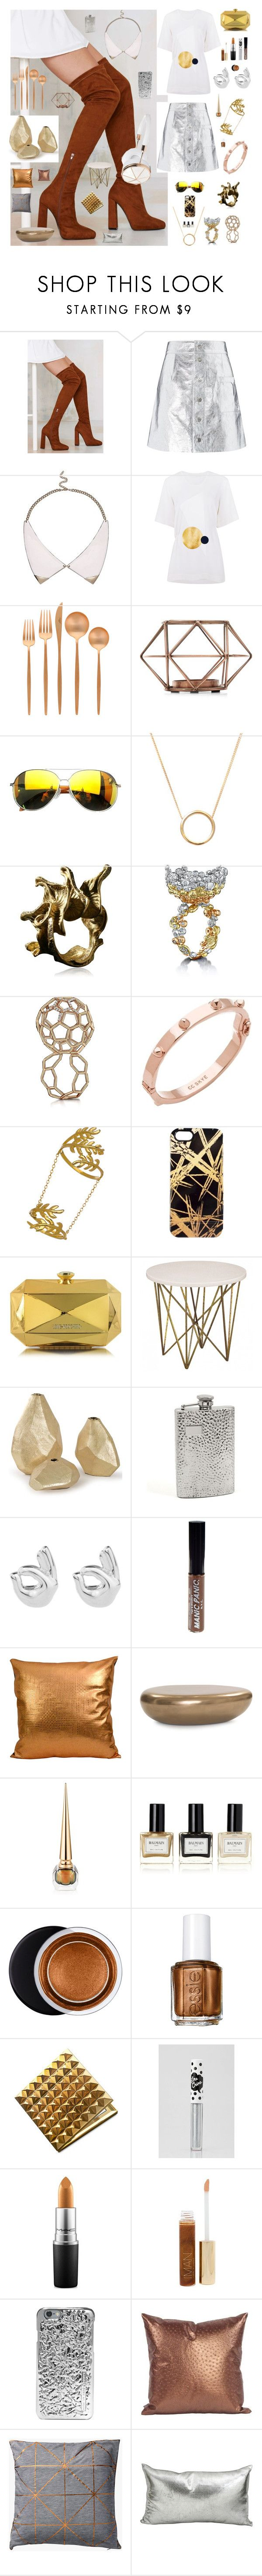 """FRACTAL AGREEMENT"" by anna-pensky ❤ liked on Polyvore featuring Jeffrey Campbell, Coperni Femme, River Island, Surreal But Nice, Cutipol, Givenchy, Lee Renee, ALESSANDRO DARI, CC SKYE and Seraphina"